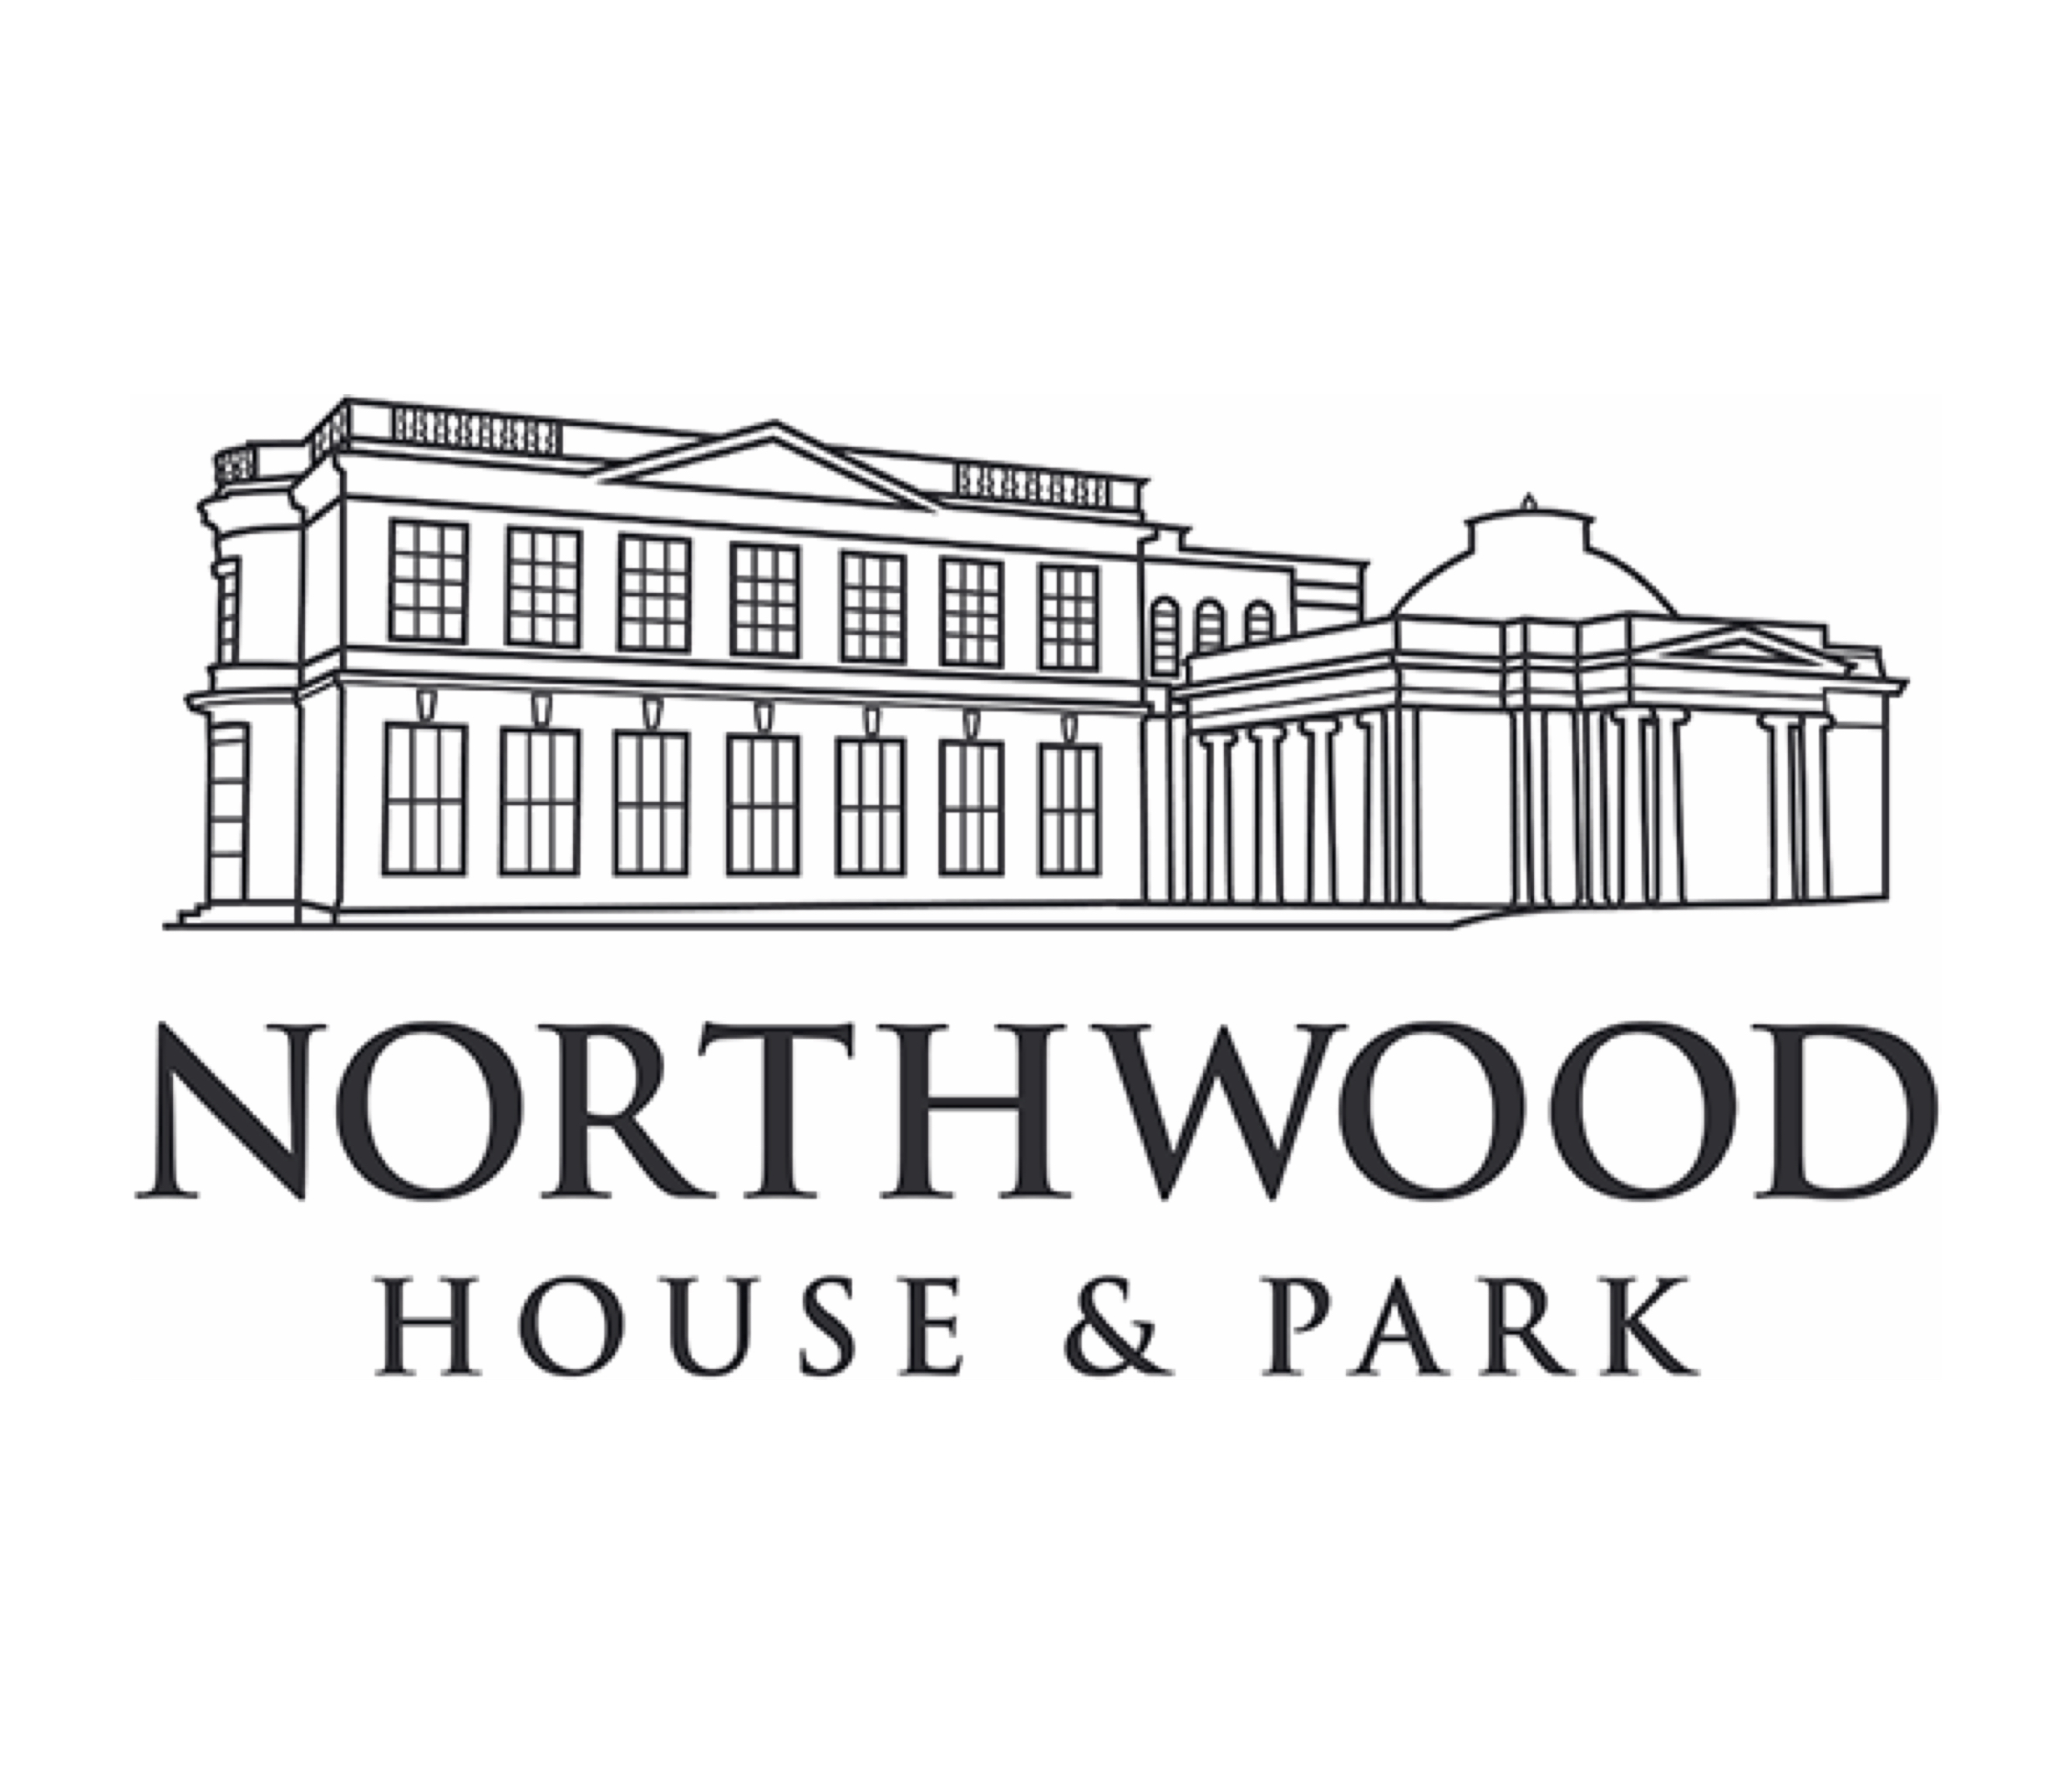 14 northwood house.jpg